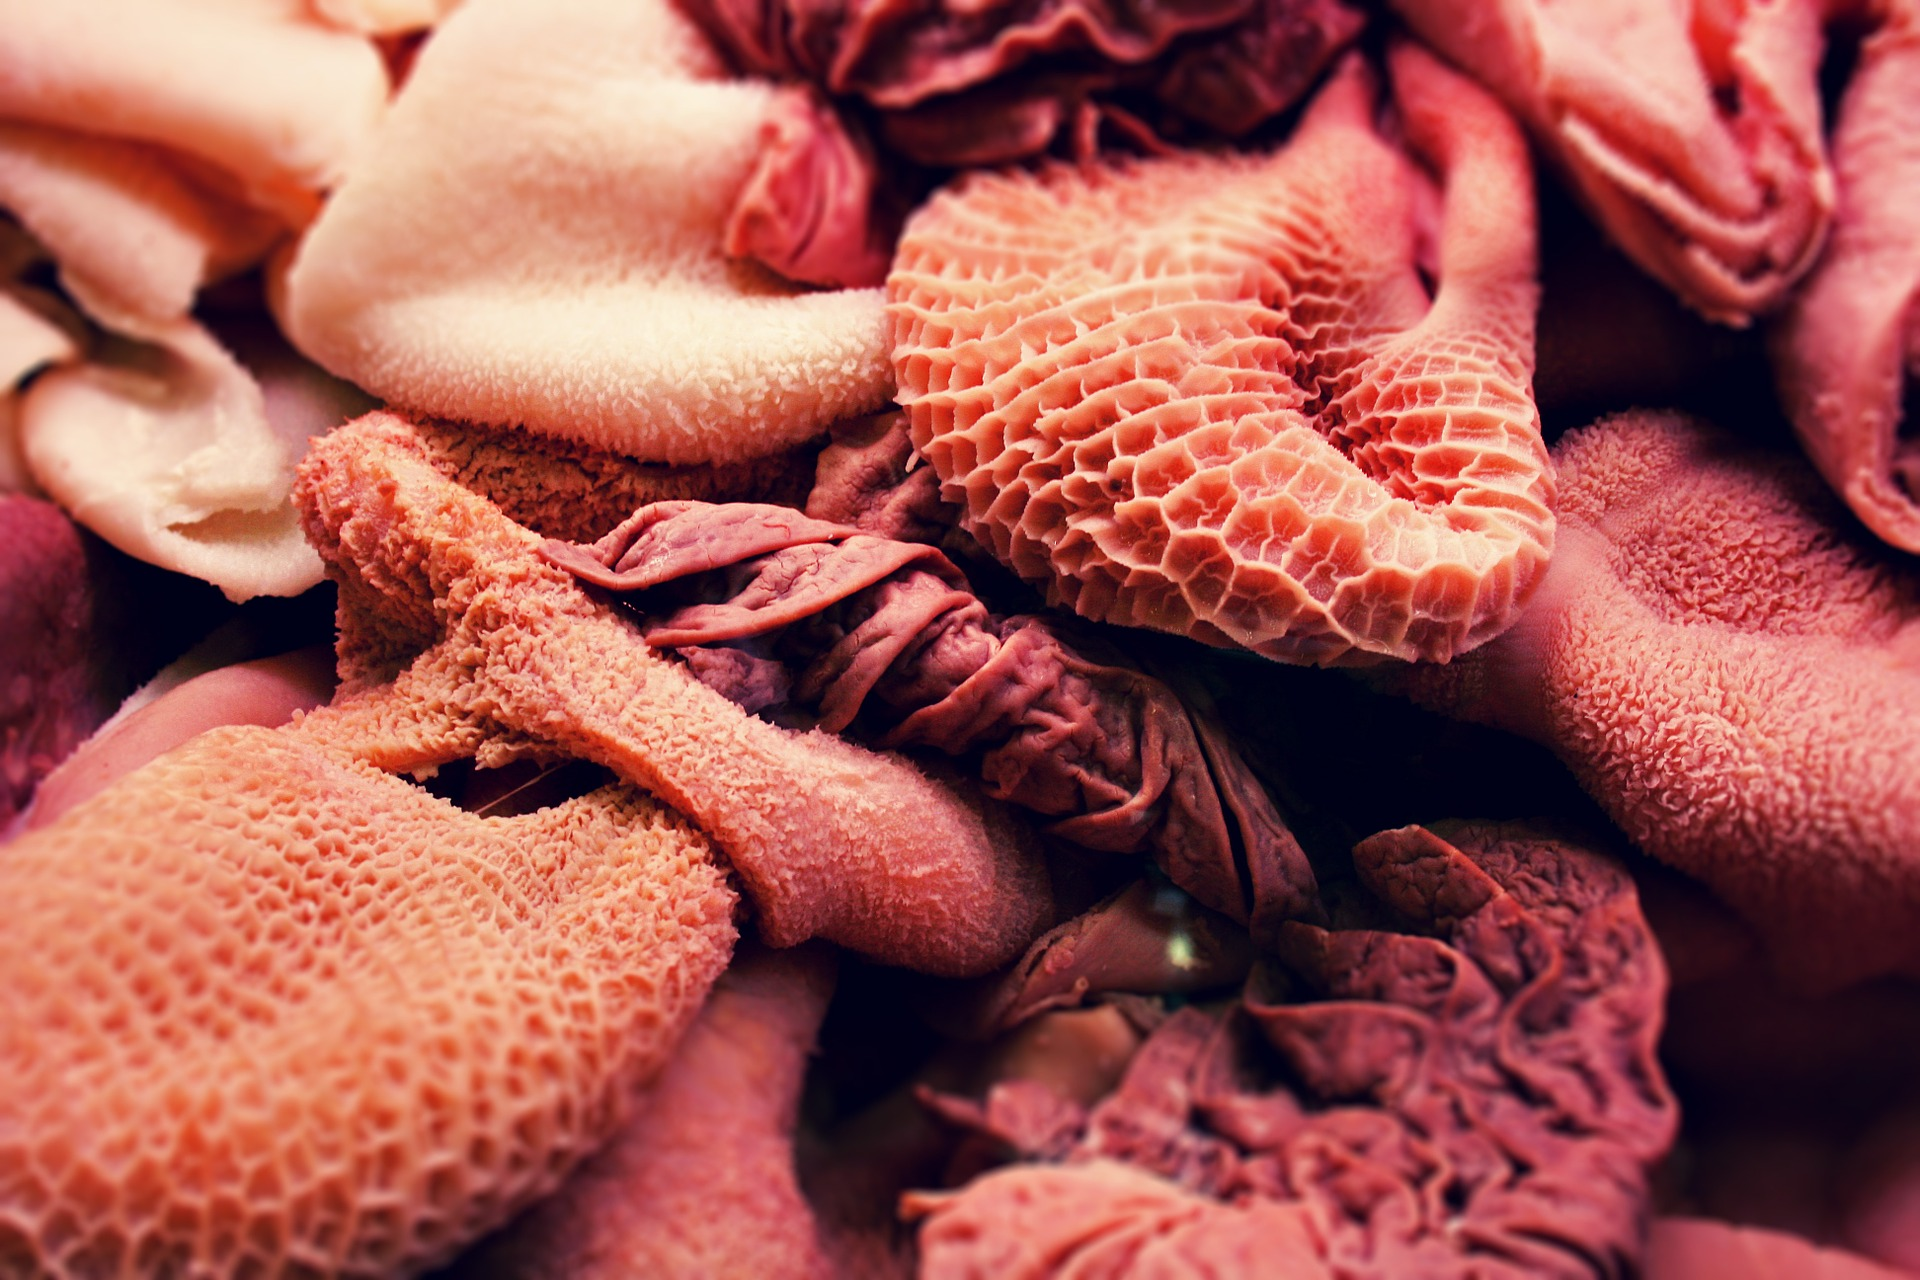 A selection of raw offal